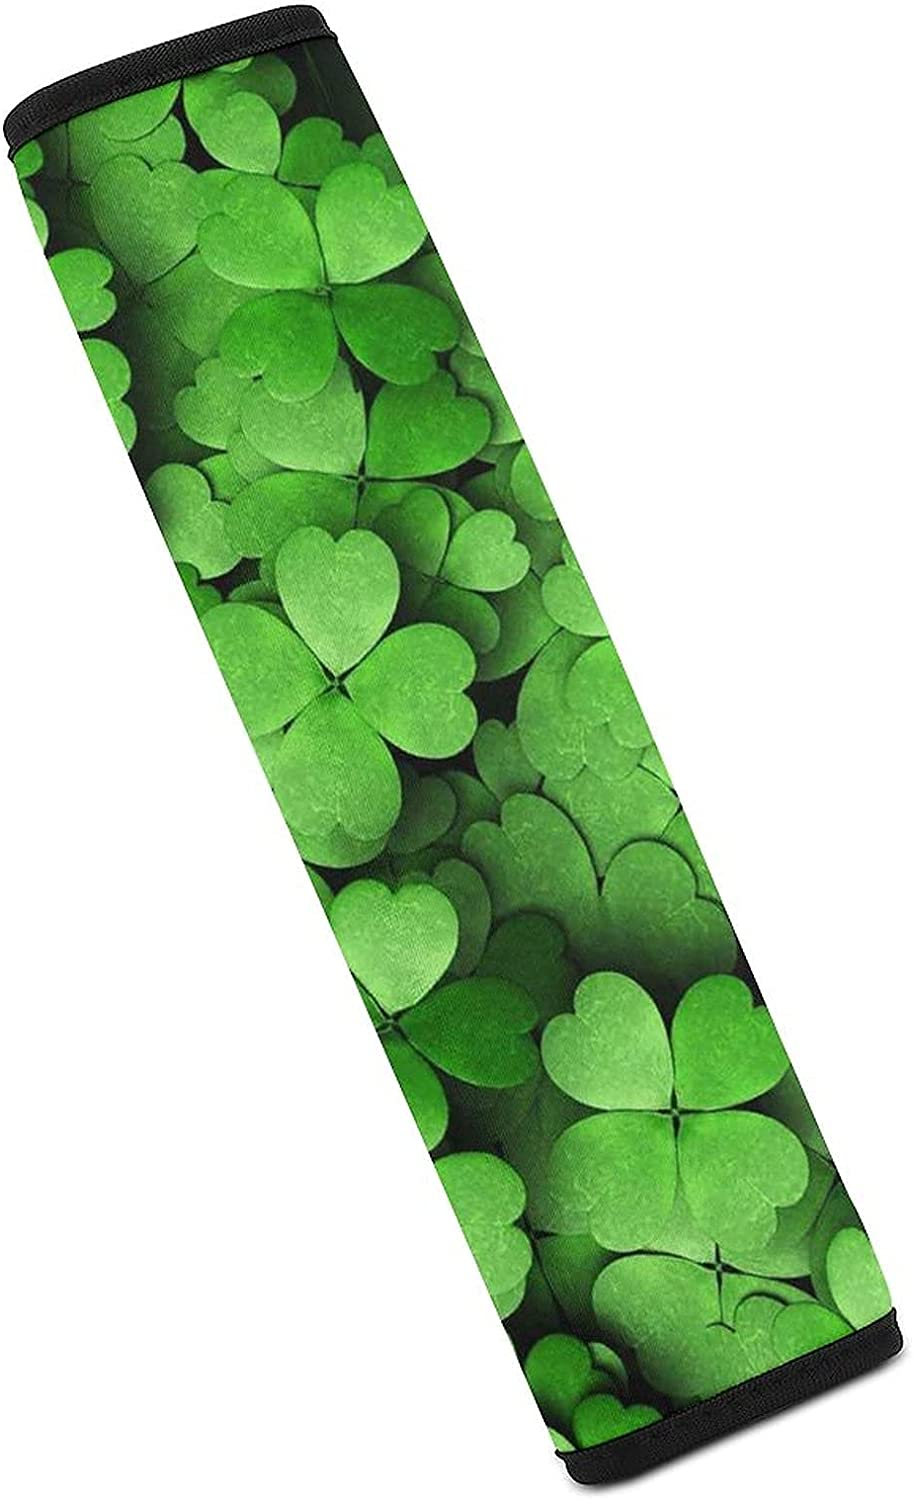 St. Patricks Purchase Day Green 4 Leaf Clovers Seat Covers Car Direct store Belt